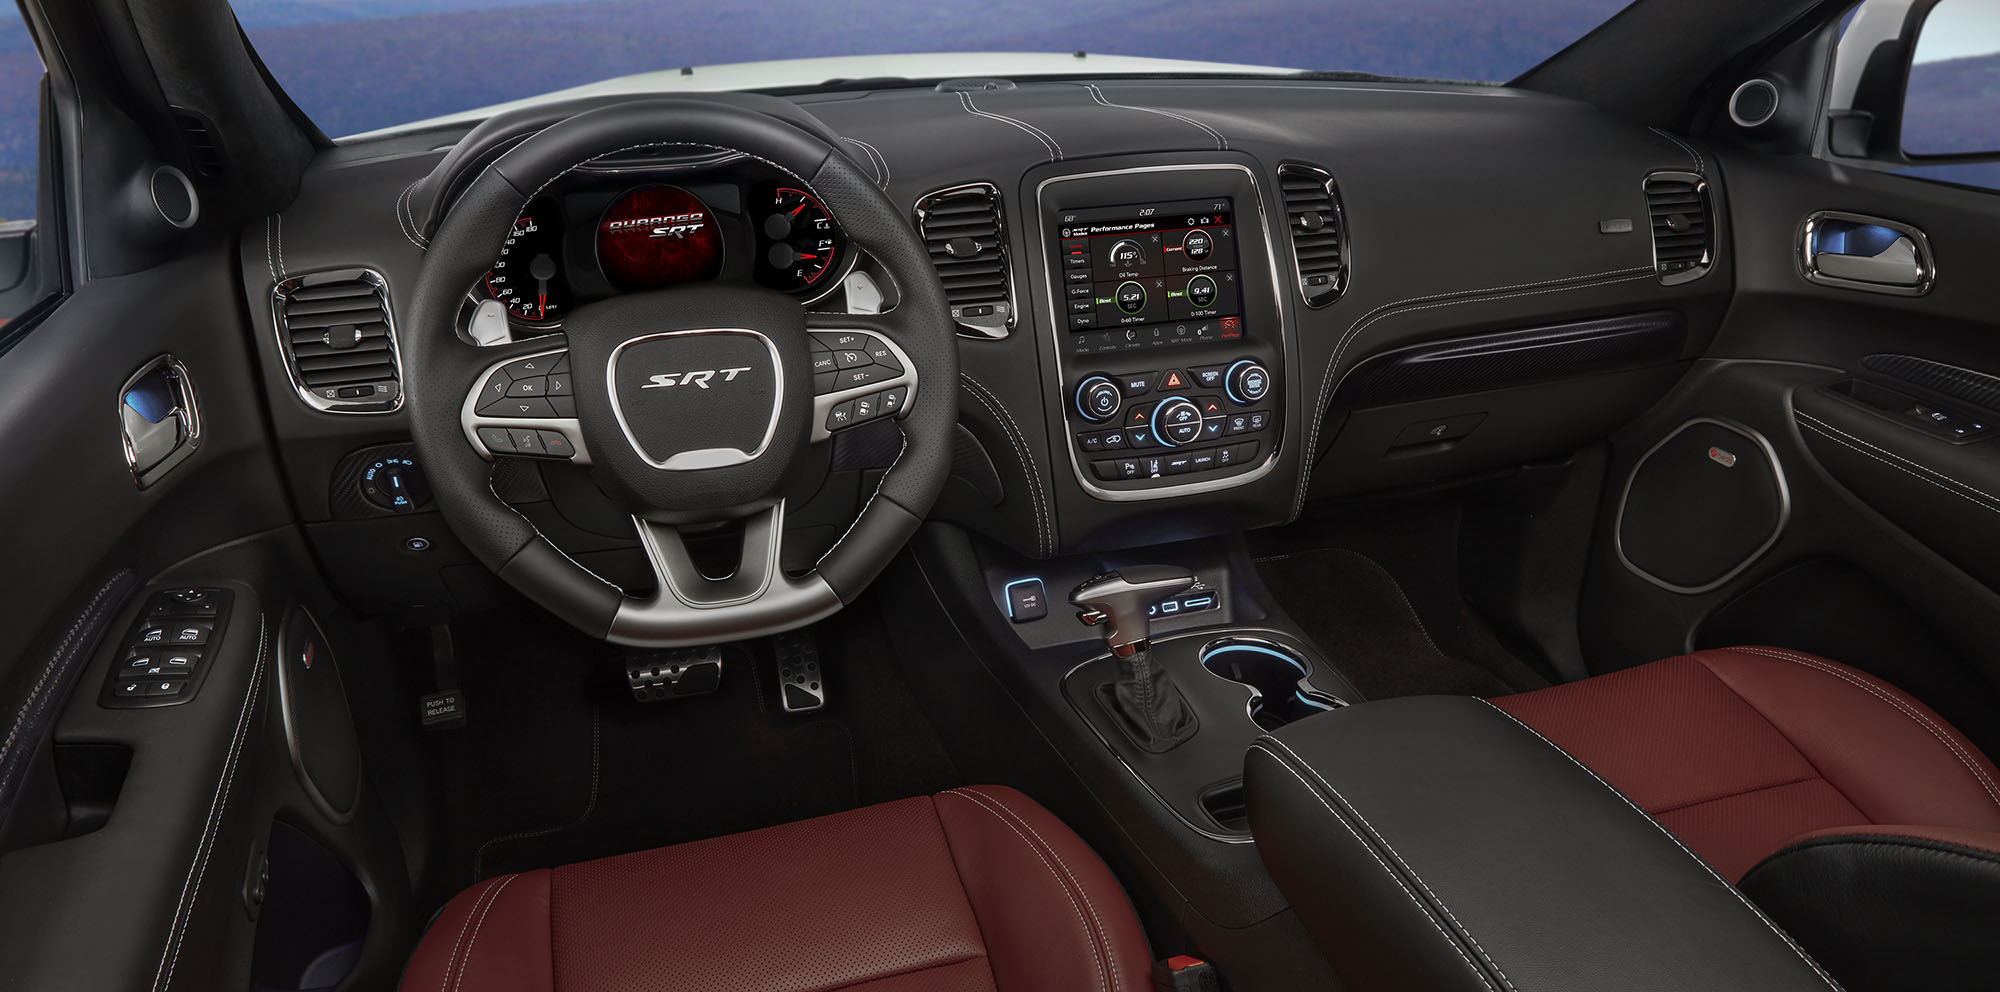 2018 dodge 1 ton. plain ton 2018 dodge durango srt revealed in dodge 1 ton